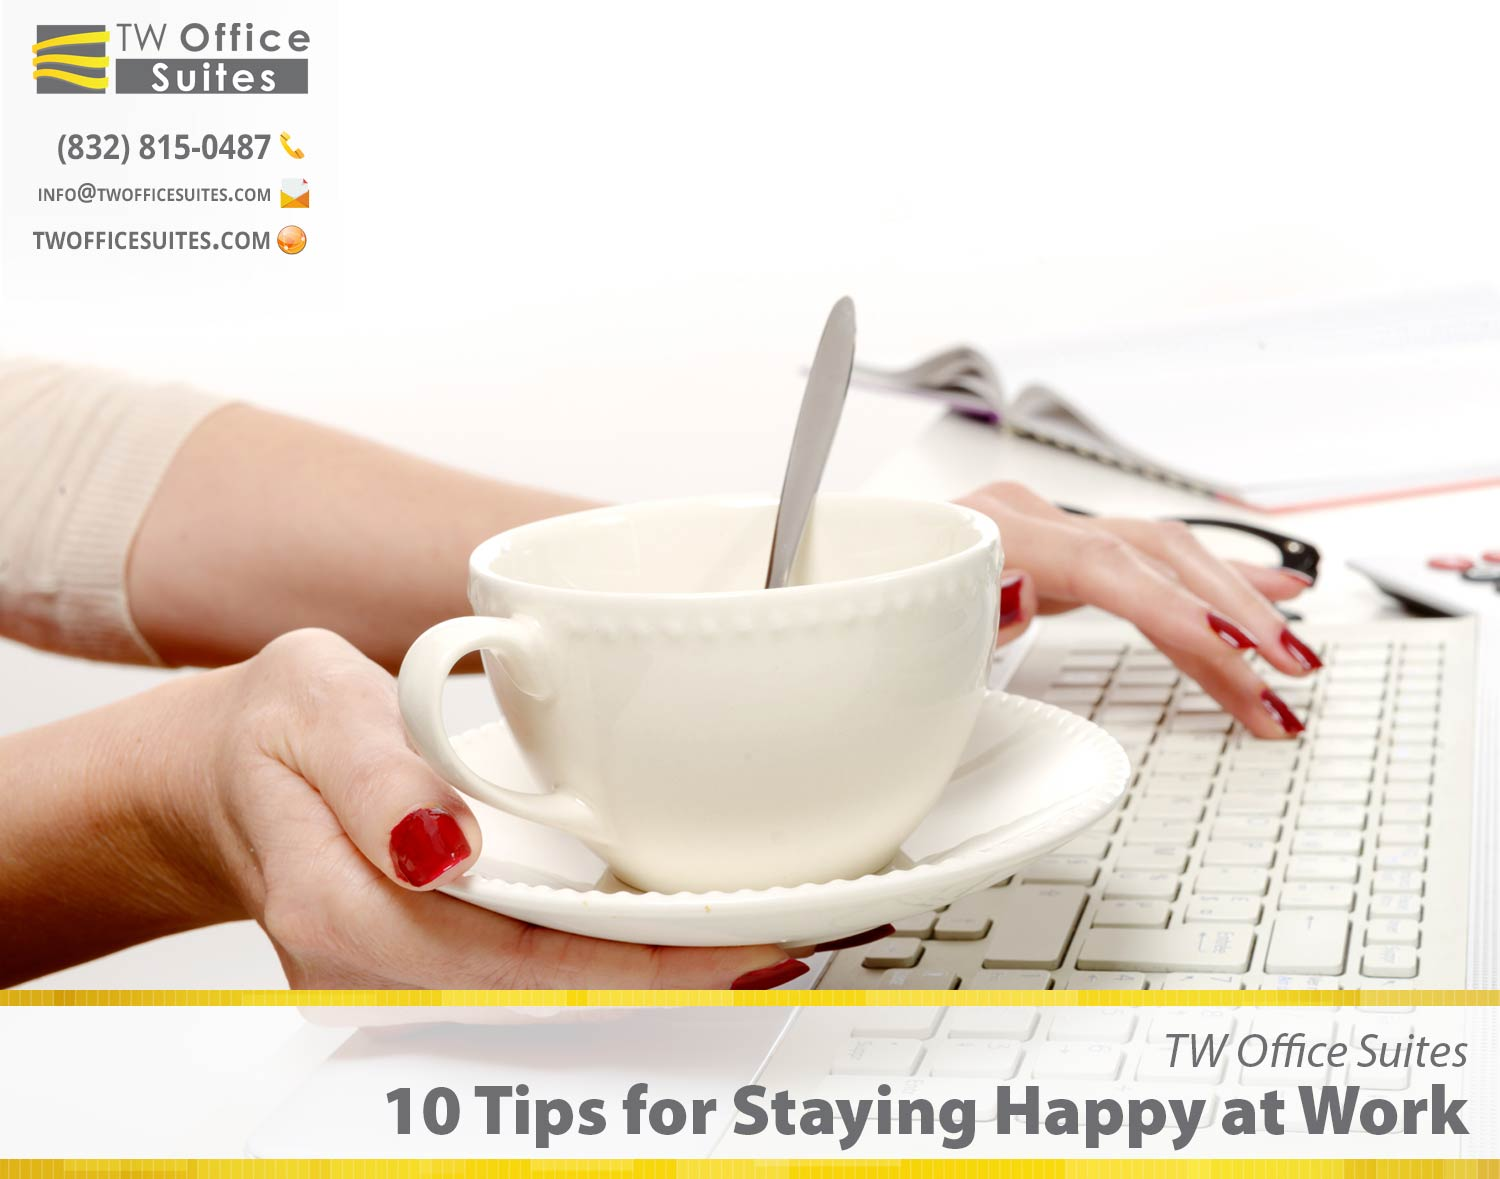 10 tips for staying happy at work